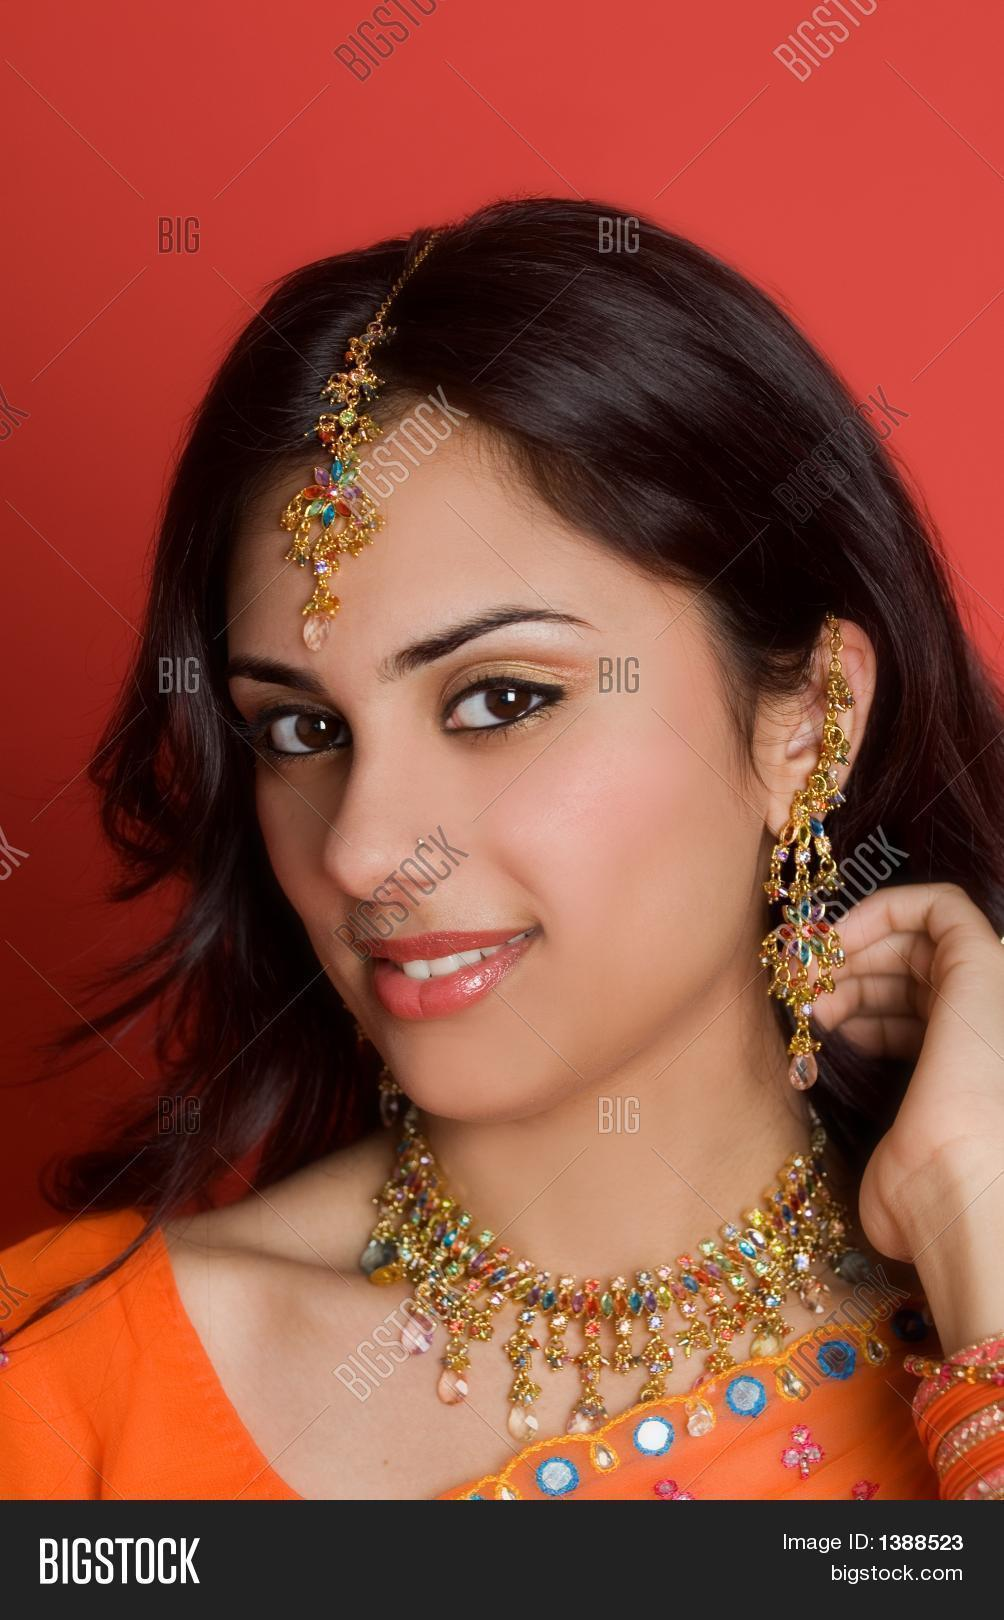 hindu single women in irwinton Hindu dating, hindu matrimonial, hindu marriage, free site, wedding, dating, canada, uk, religion, indian, temple, brahmin, love.